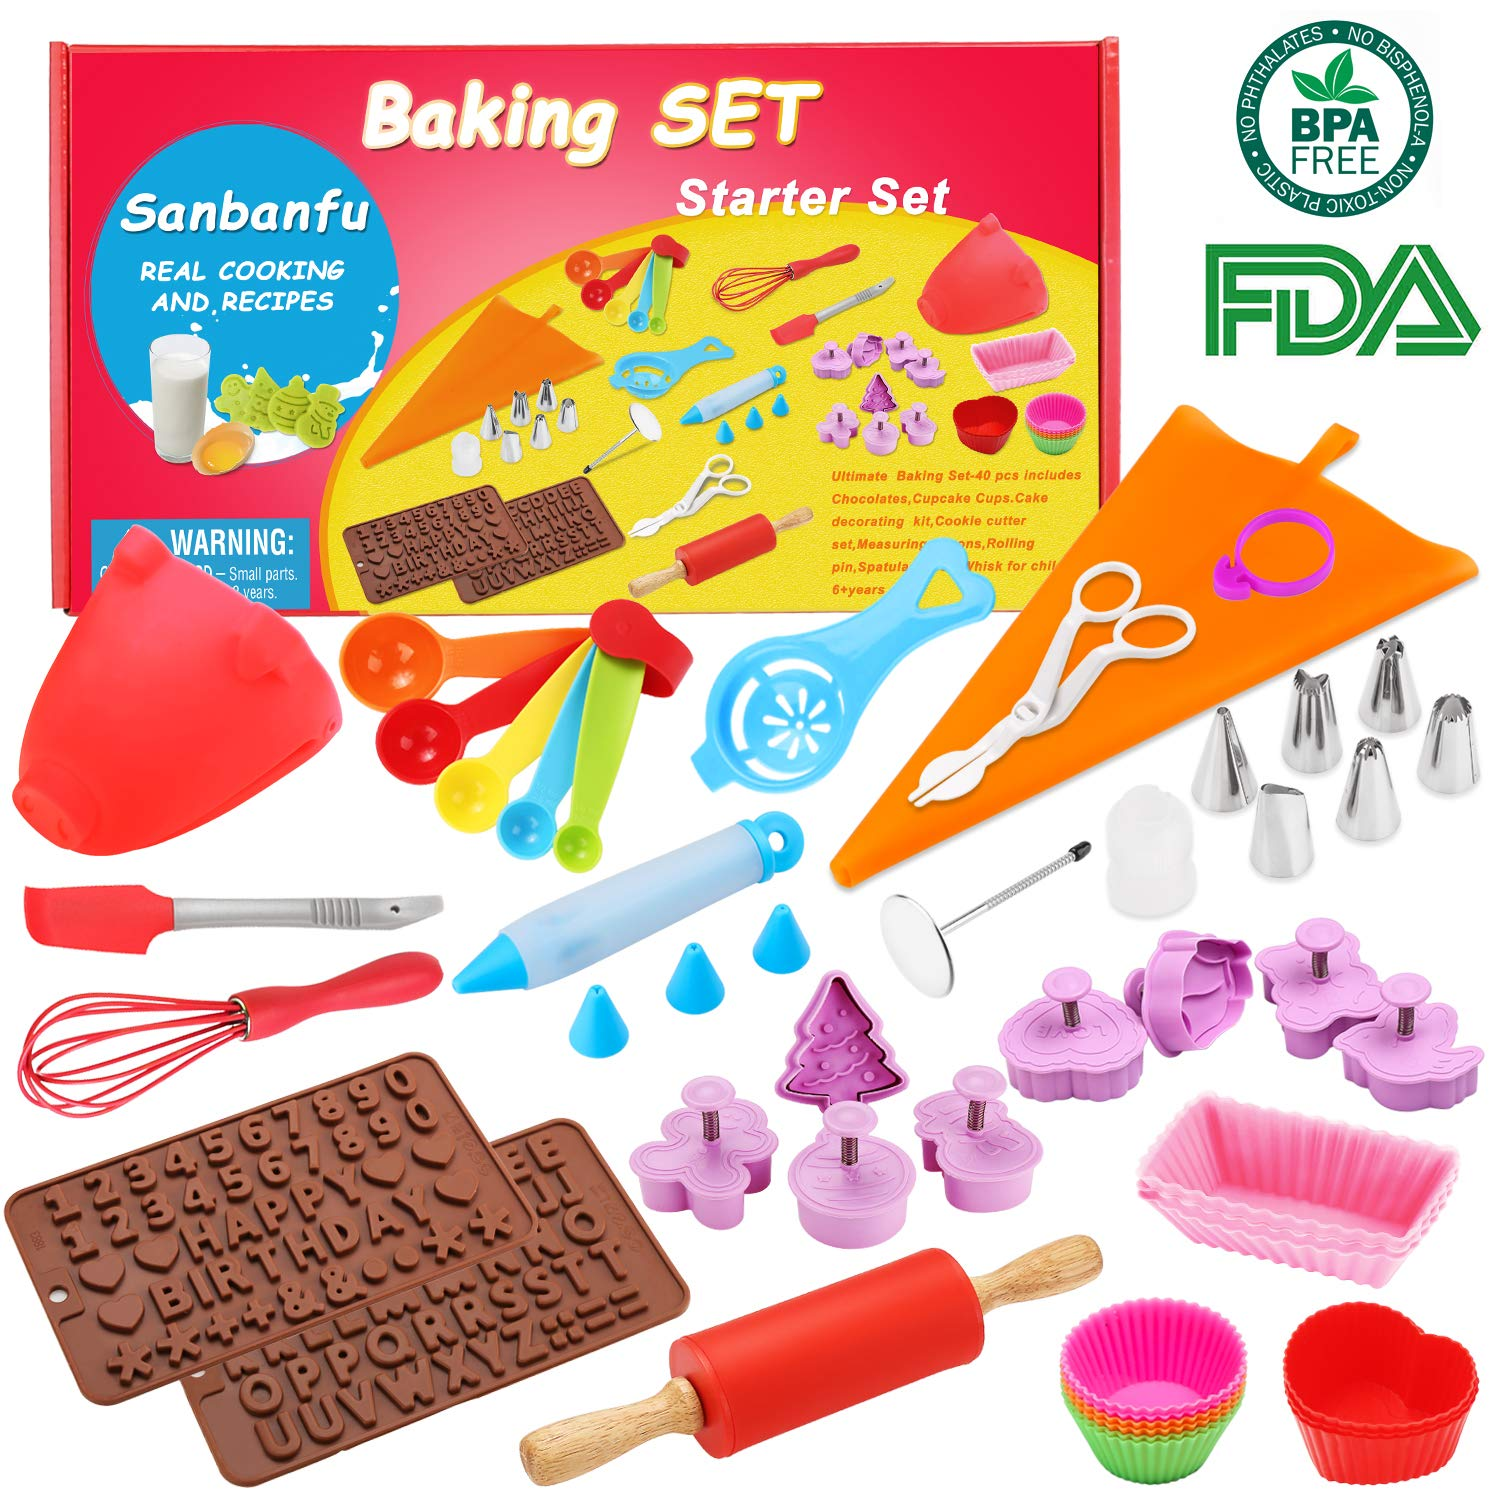 Kids Cooking Baking set Baking supplies Cupcake decorating kit-40 pcs include Silicone Chocolate Moulds,Cupcake cups,Cake decorating kit,Cookie Cutters,Measuring Spoons,Rolling Pin,Spatula,Whisk   B0753GDK3R